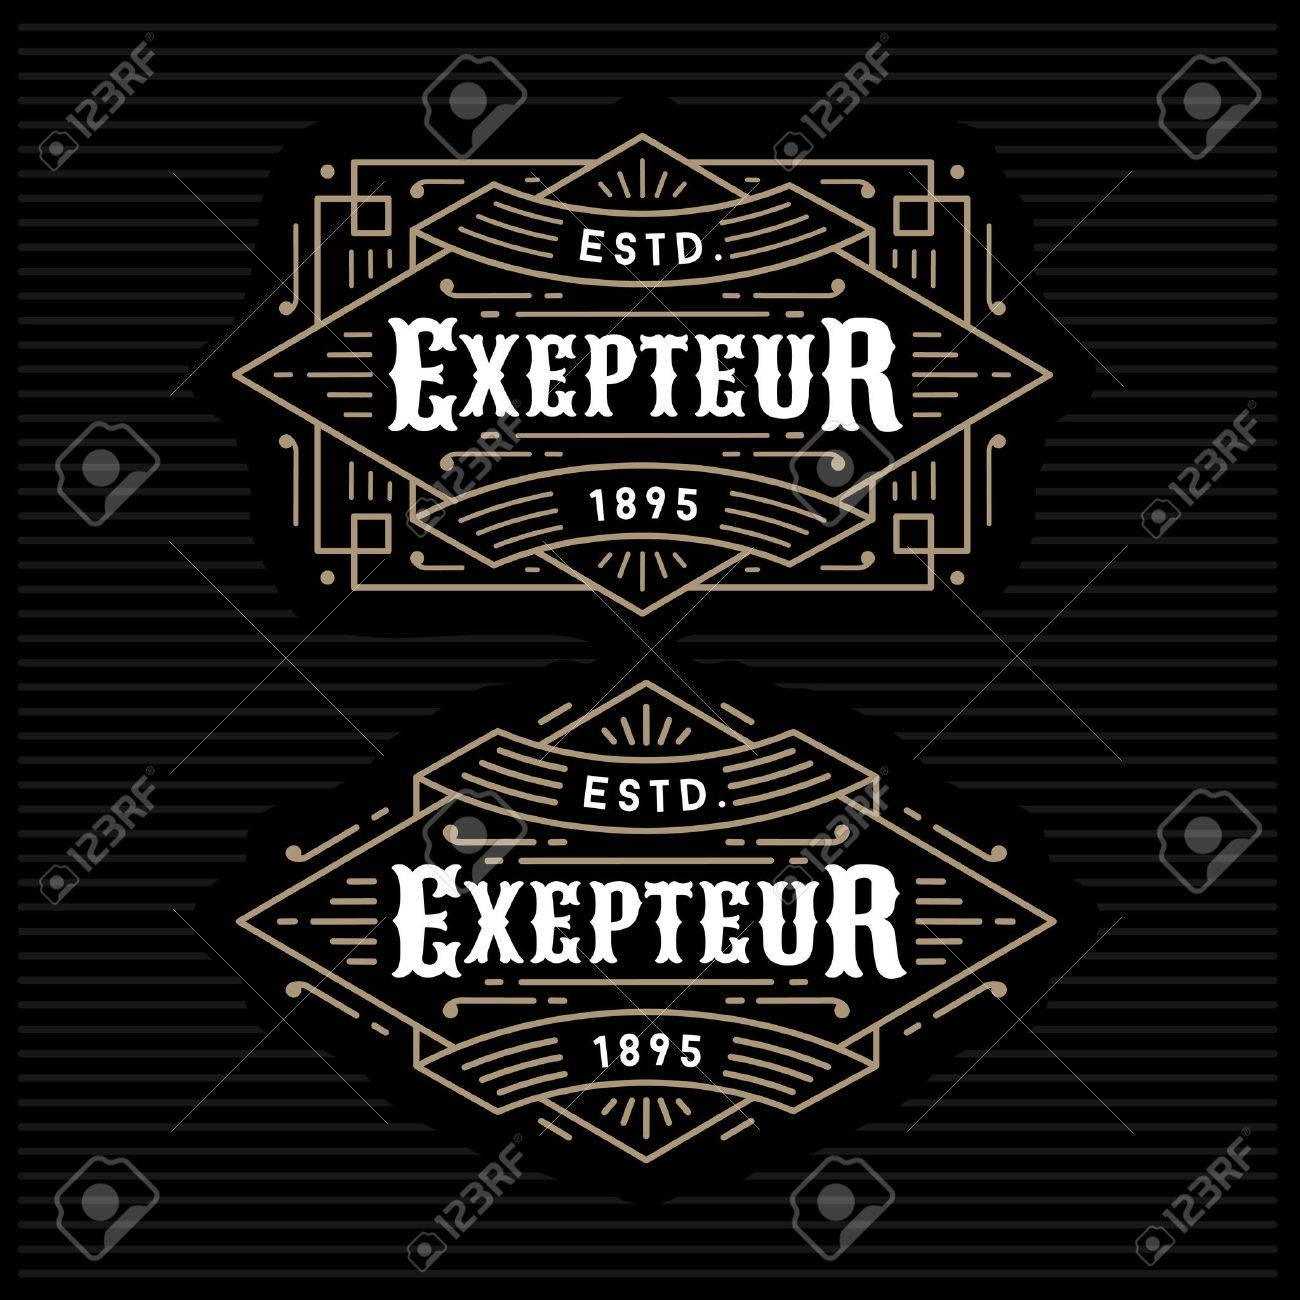 luxury antique gold monochrome art deco hipster minimal geometric vintage linear vector frame , border , label  for your logo, badge or crest Stock Vector - 45352407